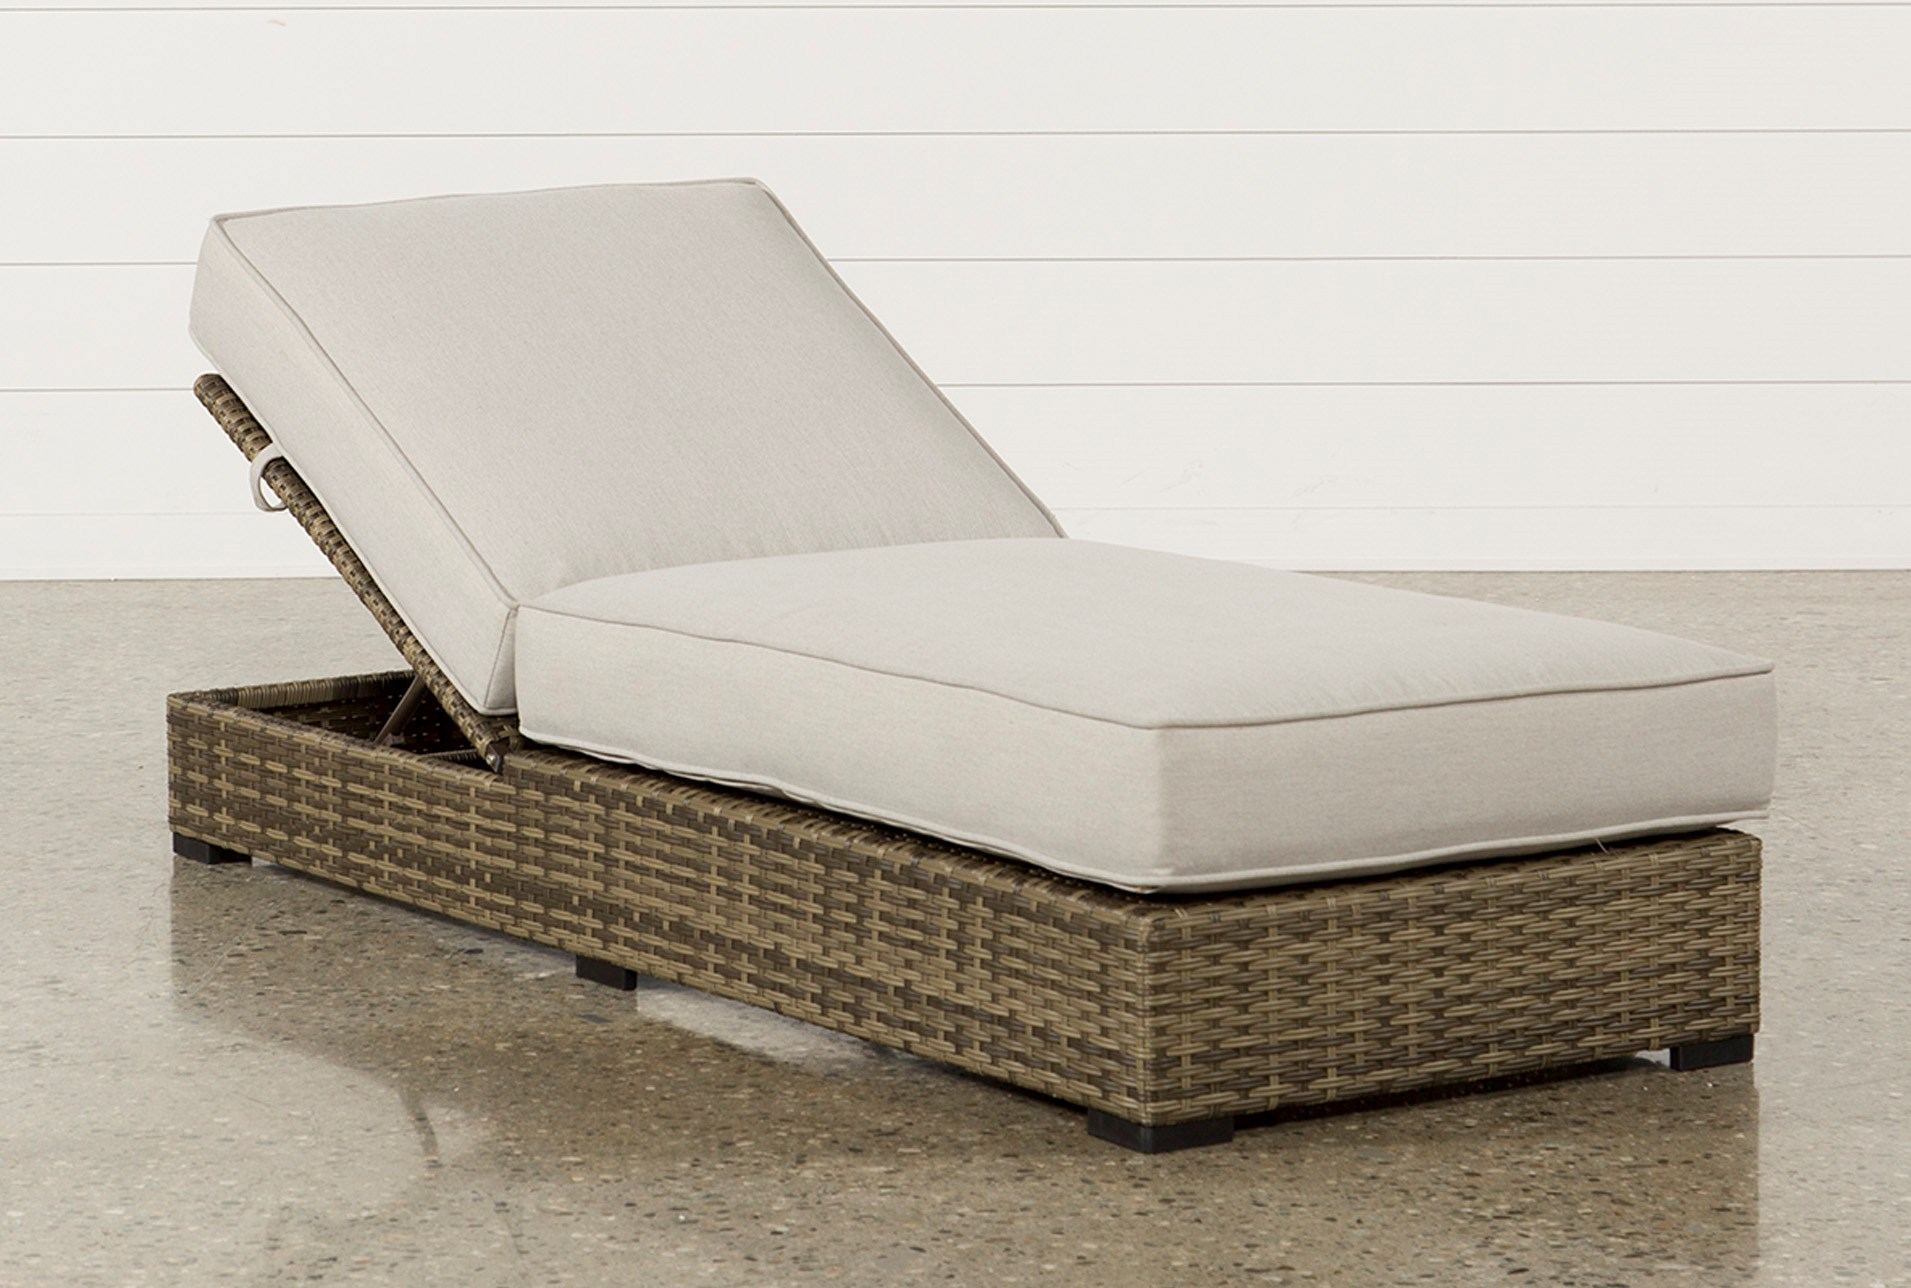 Outdoor aventura chaise lounge qty 1 has been successfully added to your cart